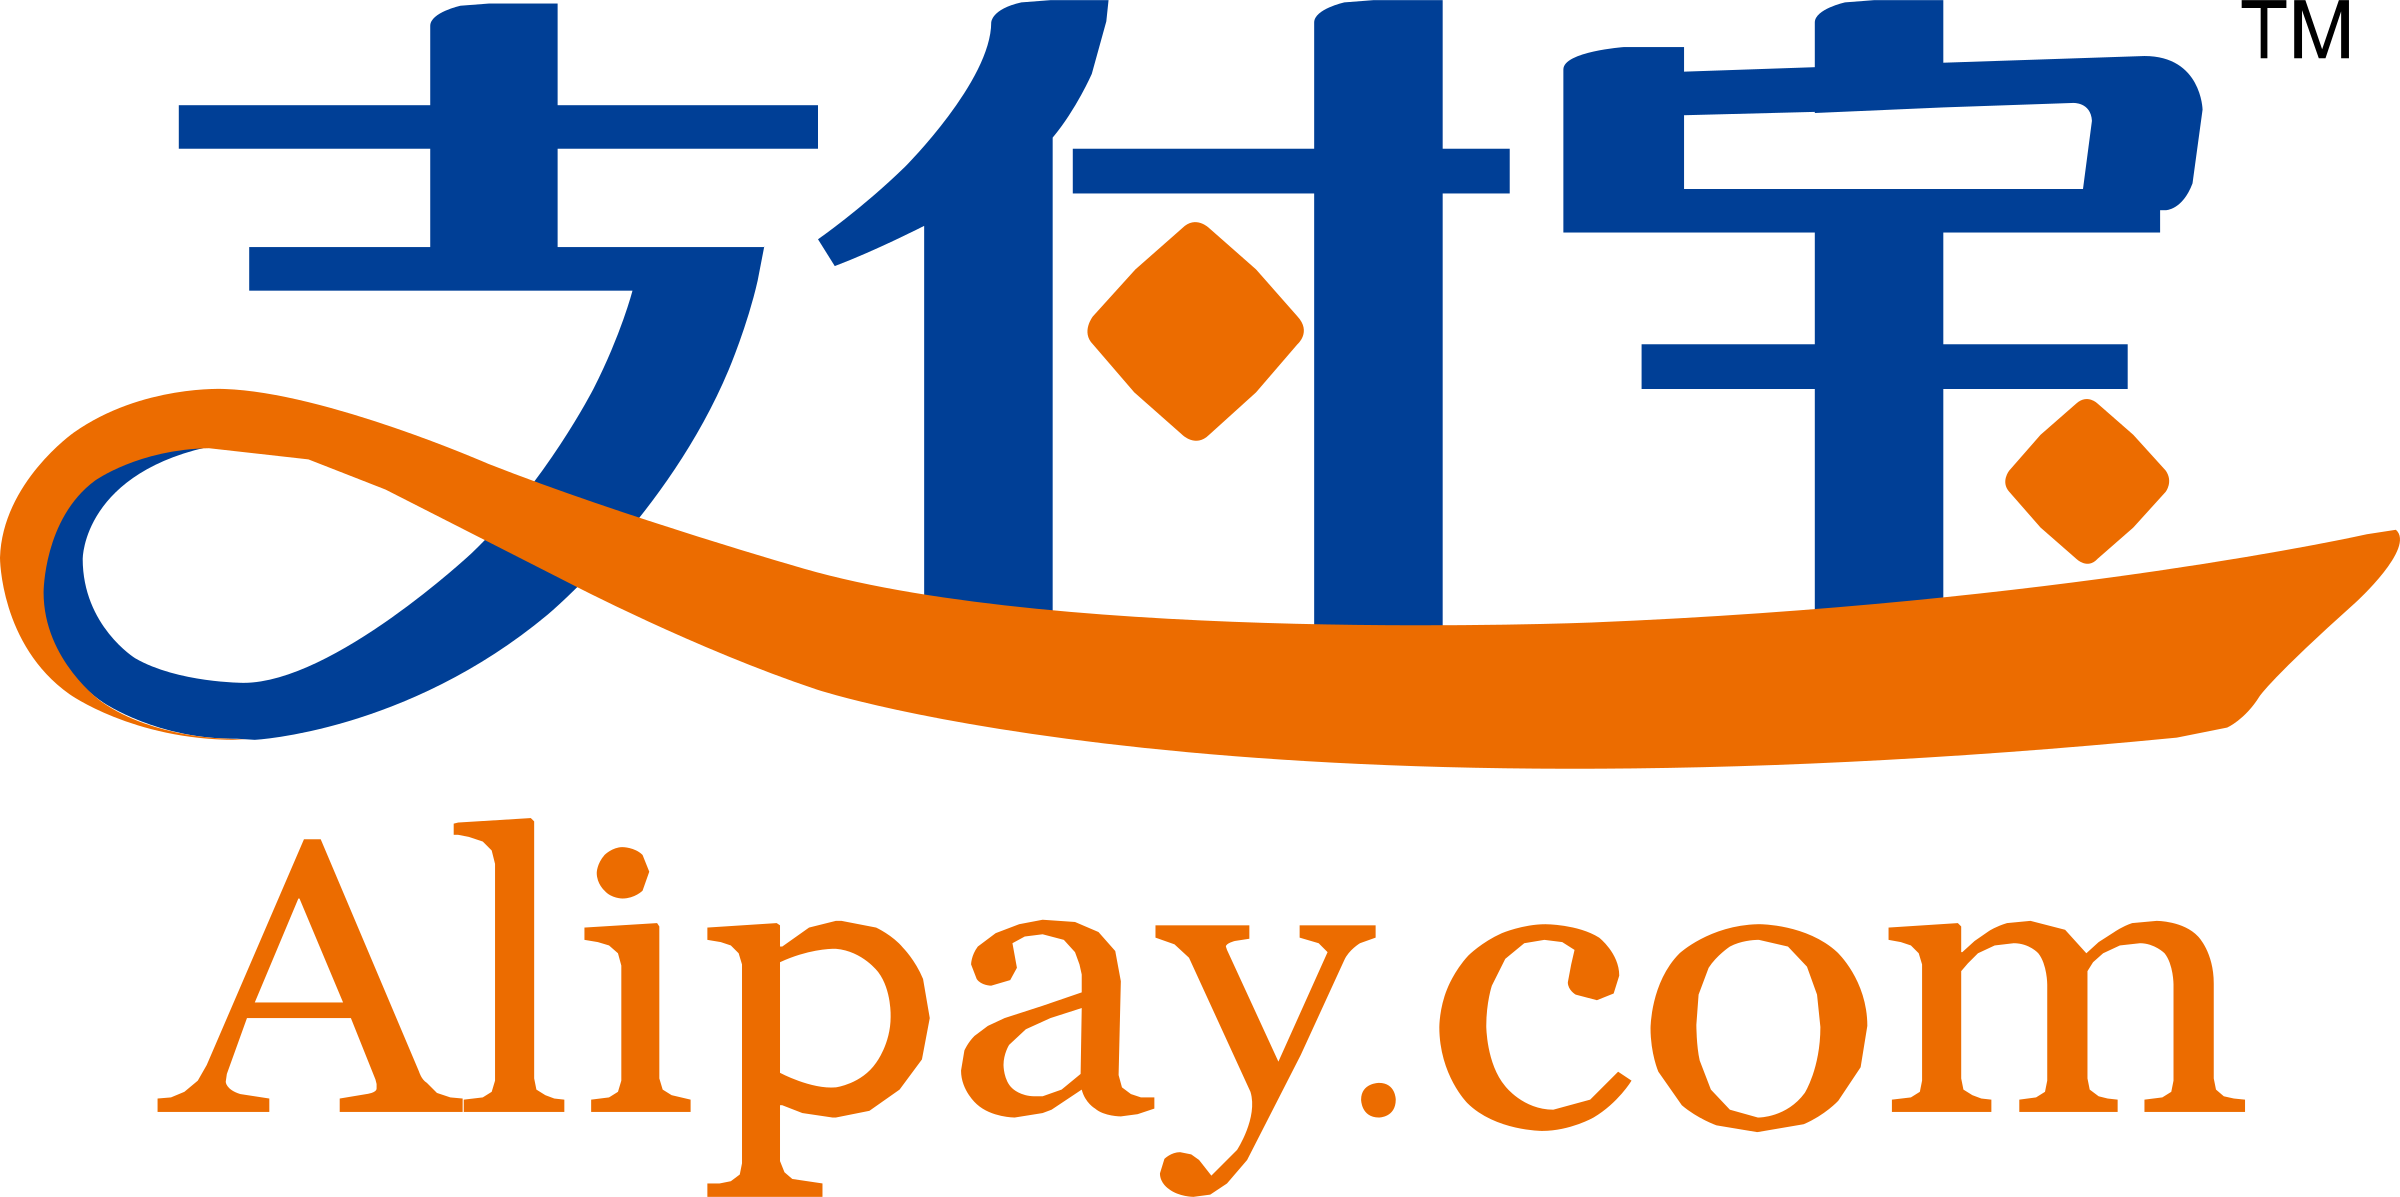 AliPay Logo PNG Transparent & SVG Vector.